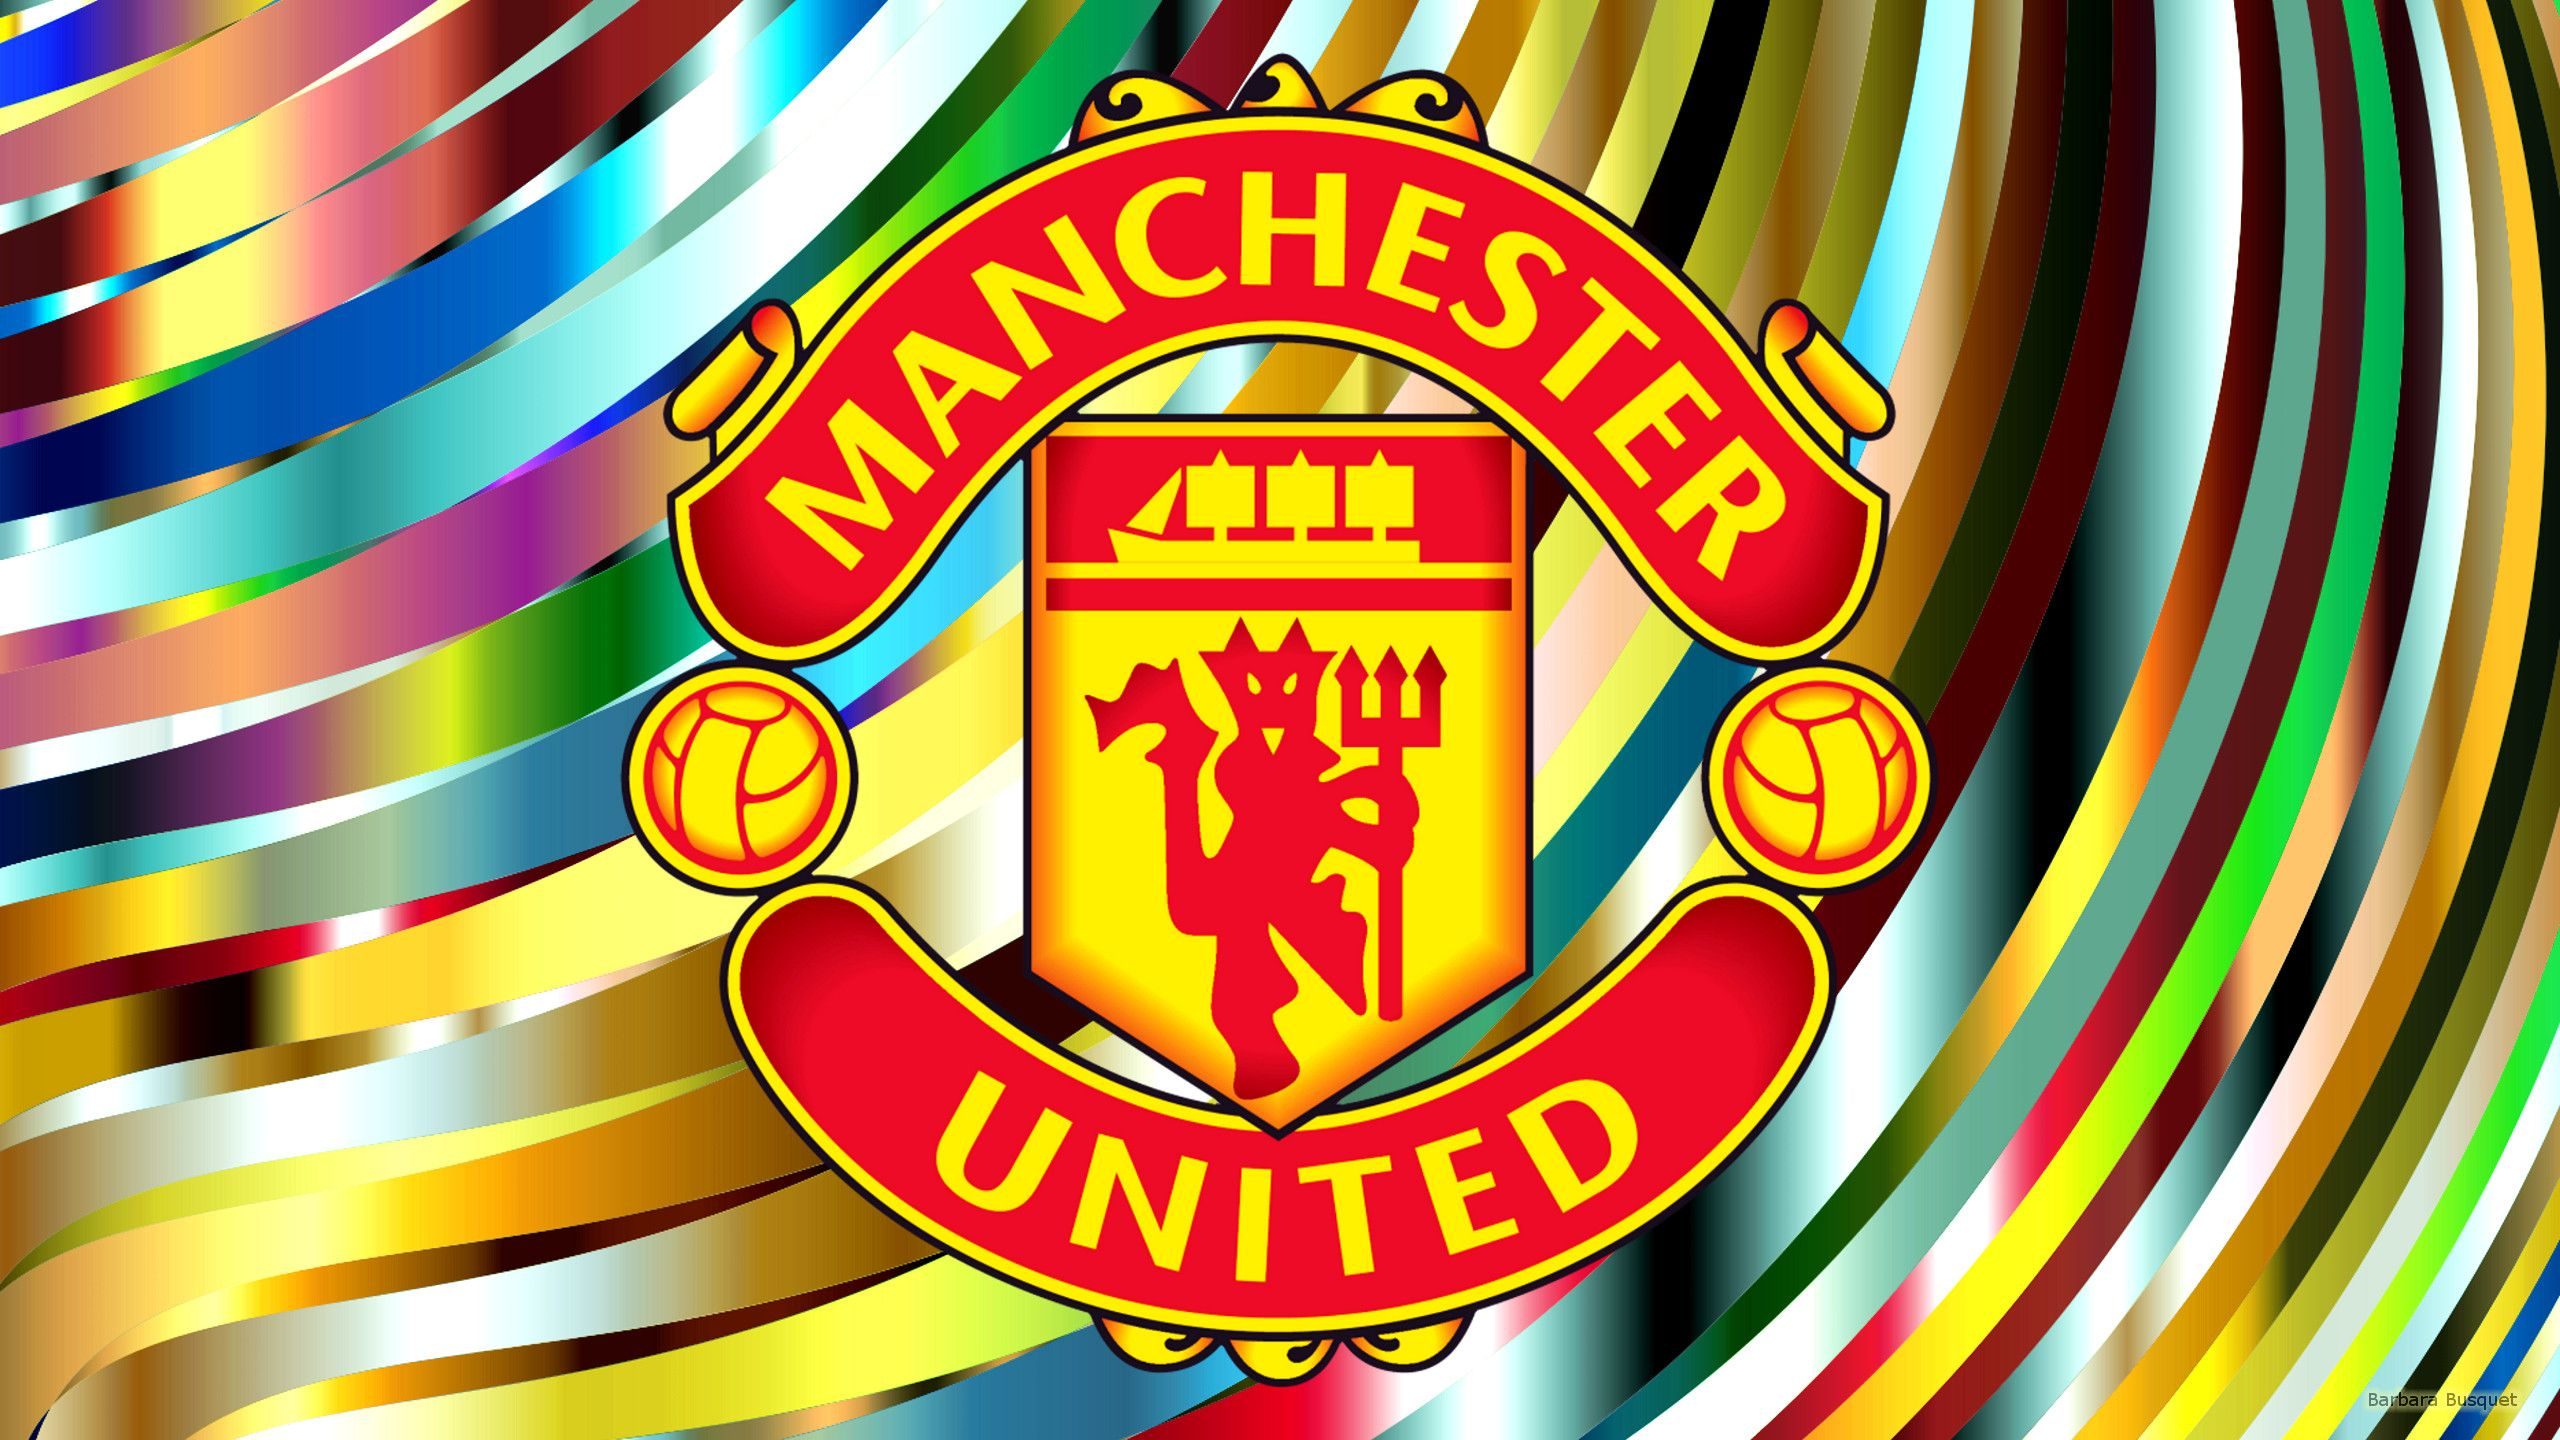 Manchester united away white android wallpaper 19201440 manchester united away white android wallpaper 19201440 wallpapers man united 48 wallpapers voltagebd Images